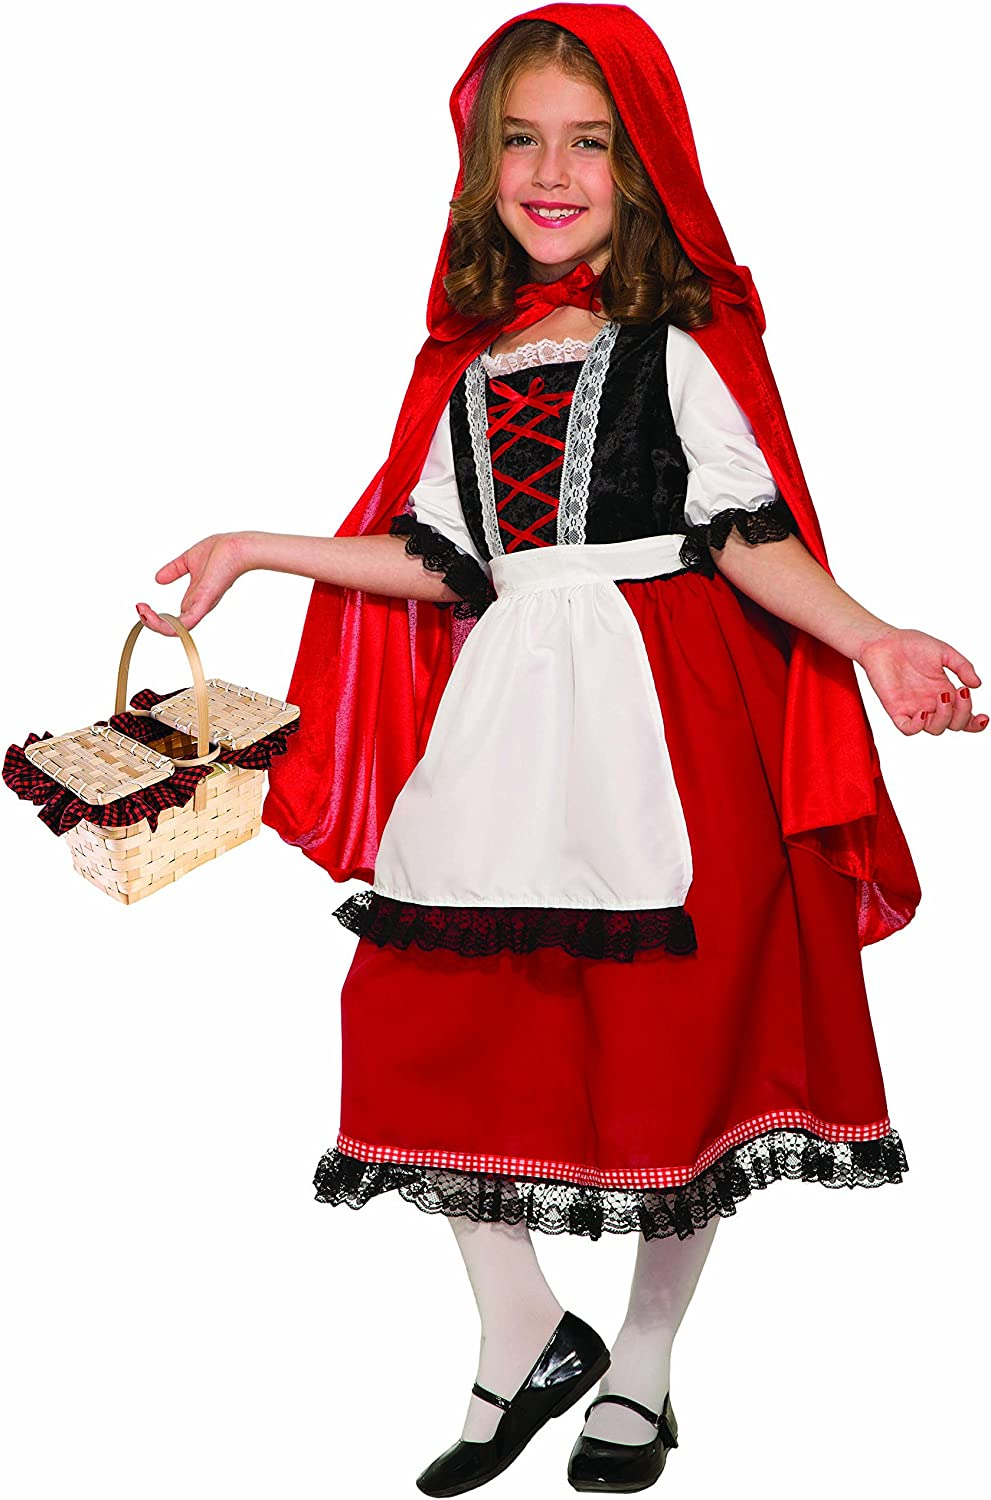 Deluxe Little Red Riding Hood Child's Costume